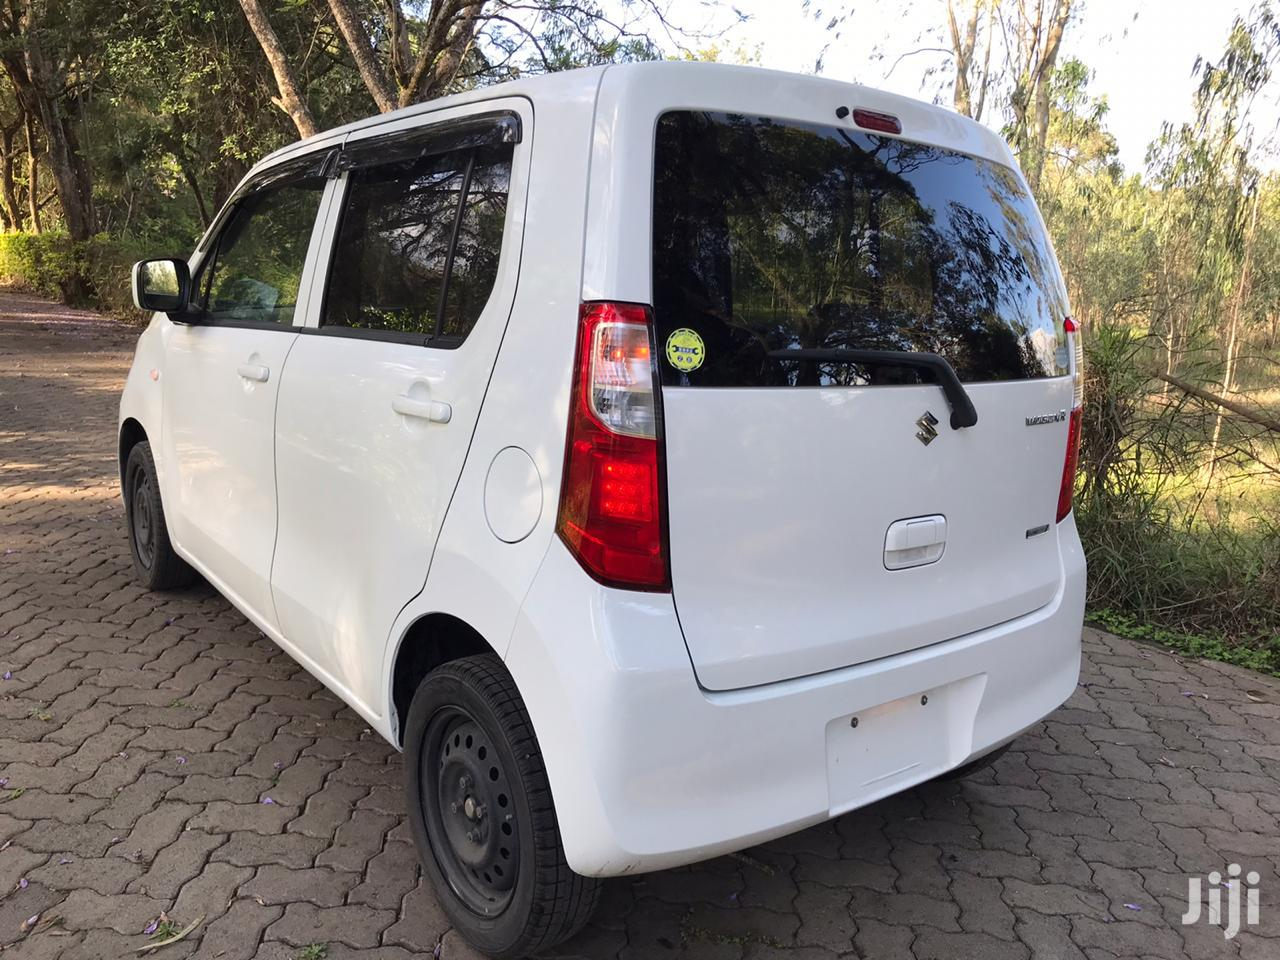 Suzuki Wagon 2014 White | Cars for sale in Langata, Nairobi, Kenya